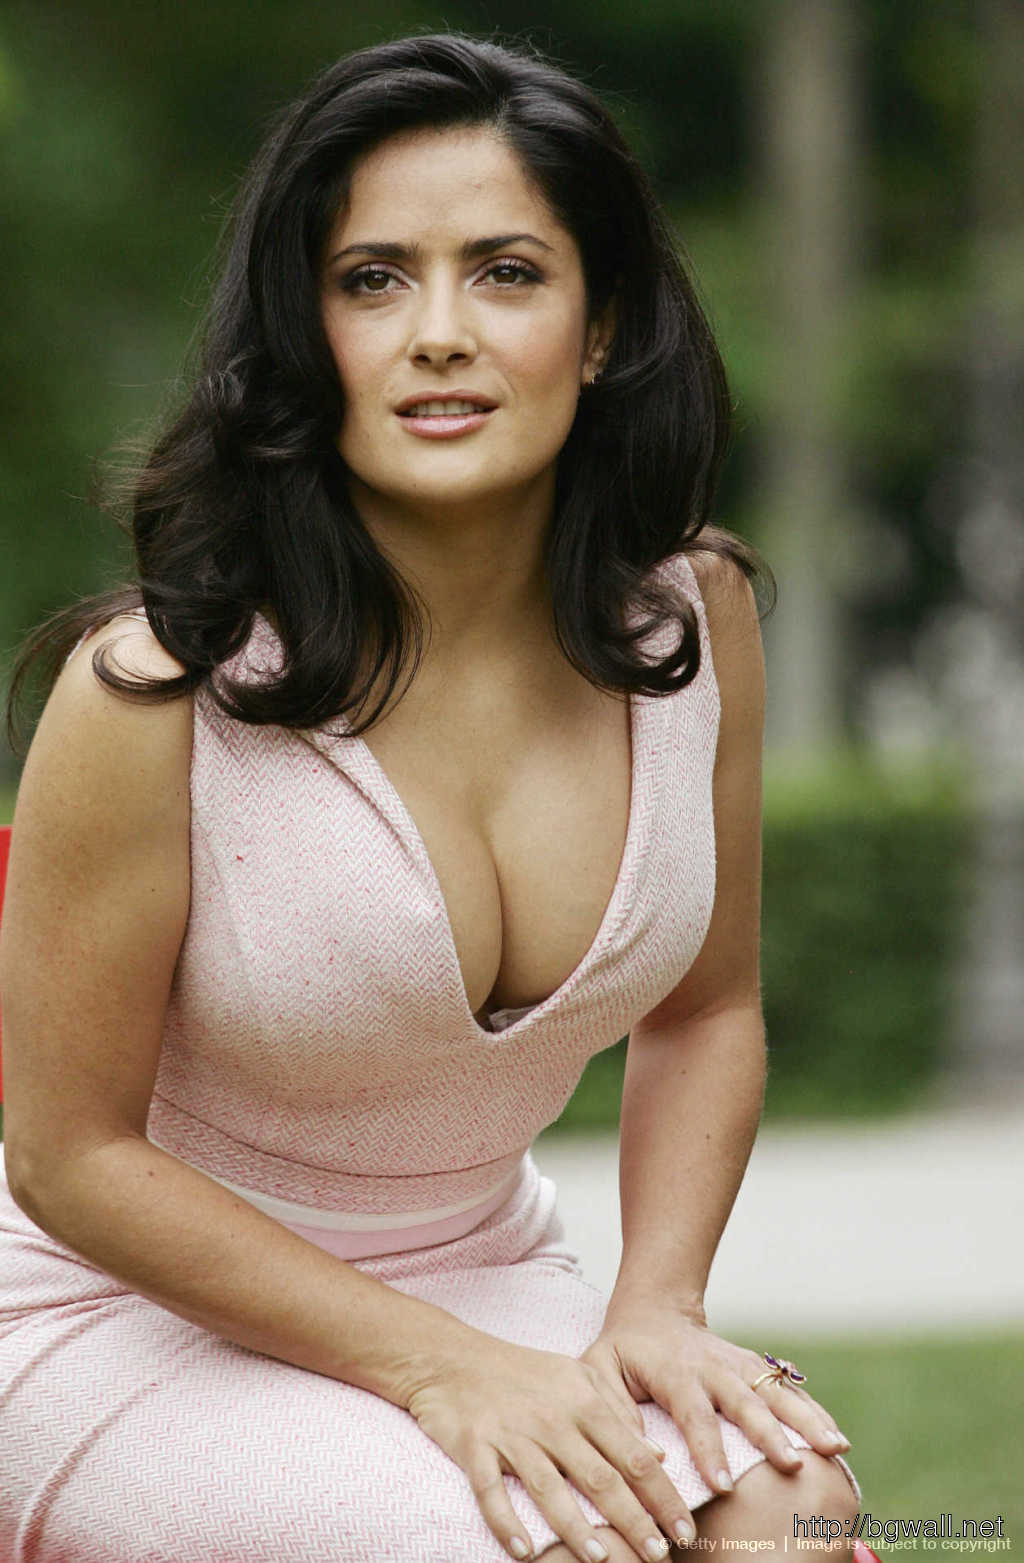 Mexican Actress Salma Hayek Poses During Full Size